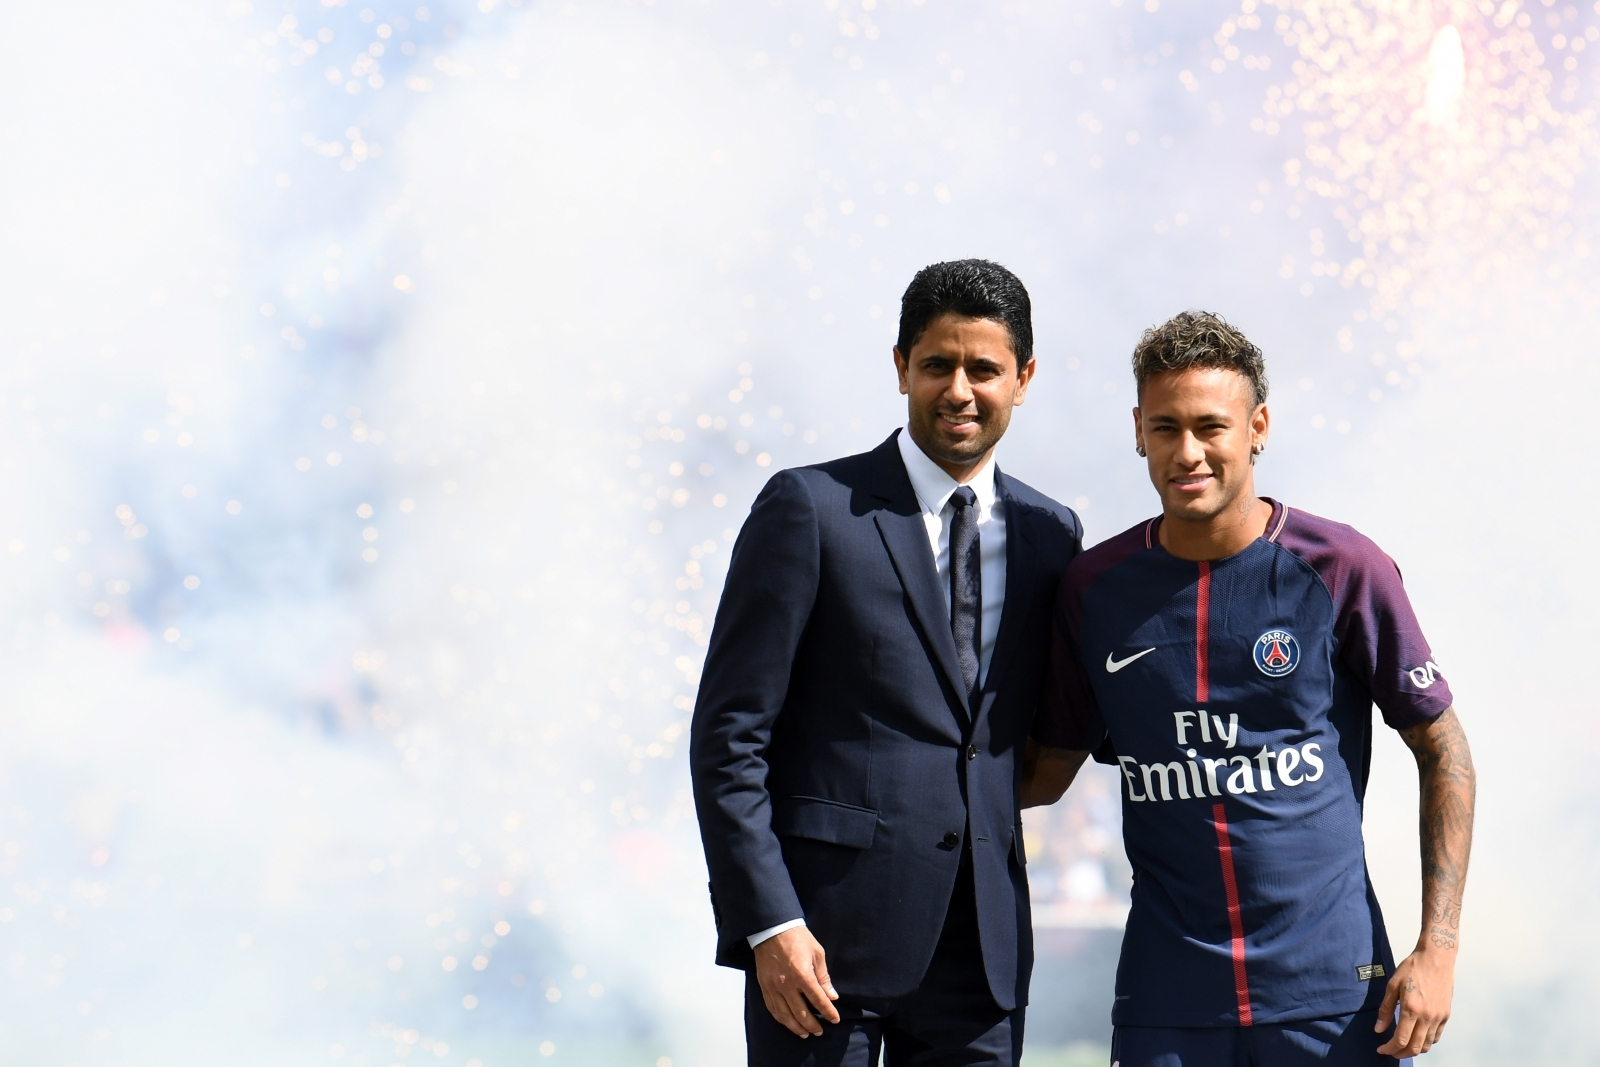 Nasser Al-Khelaifi and Neymar